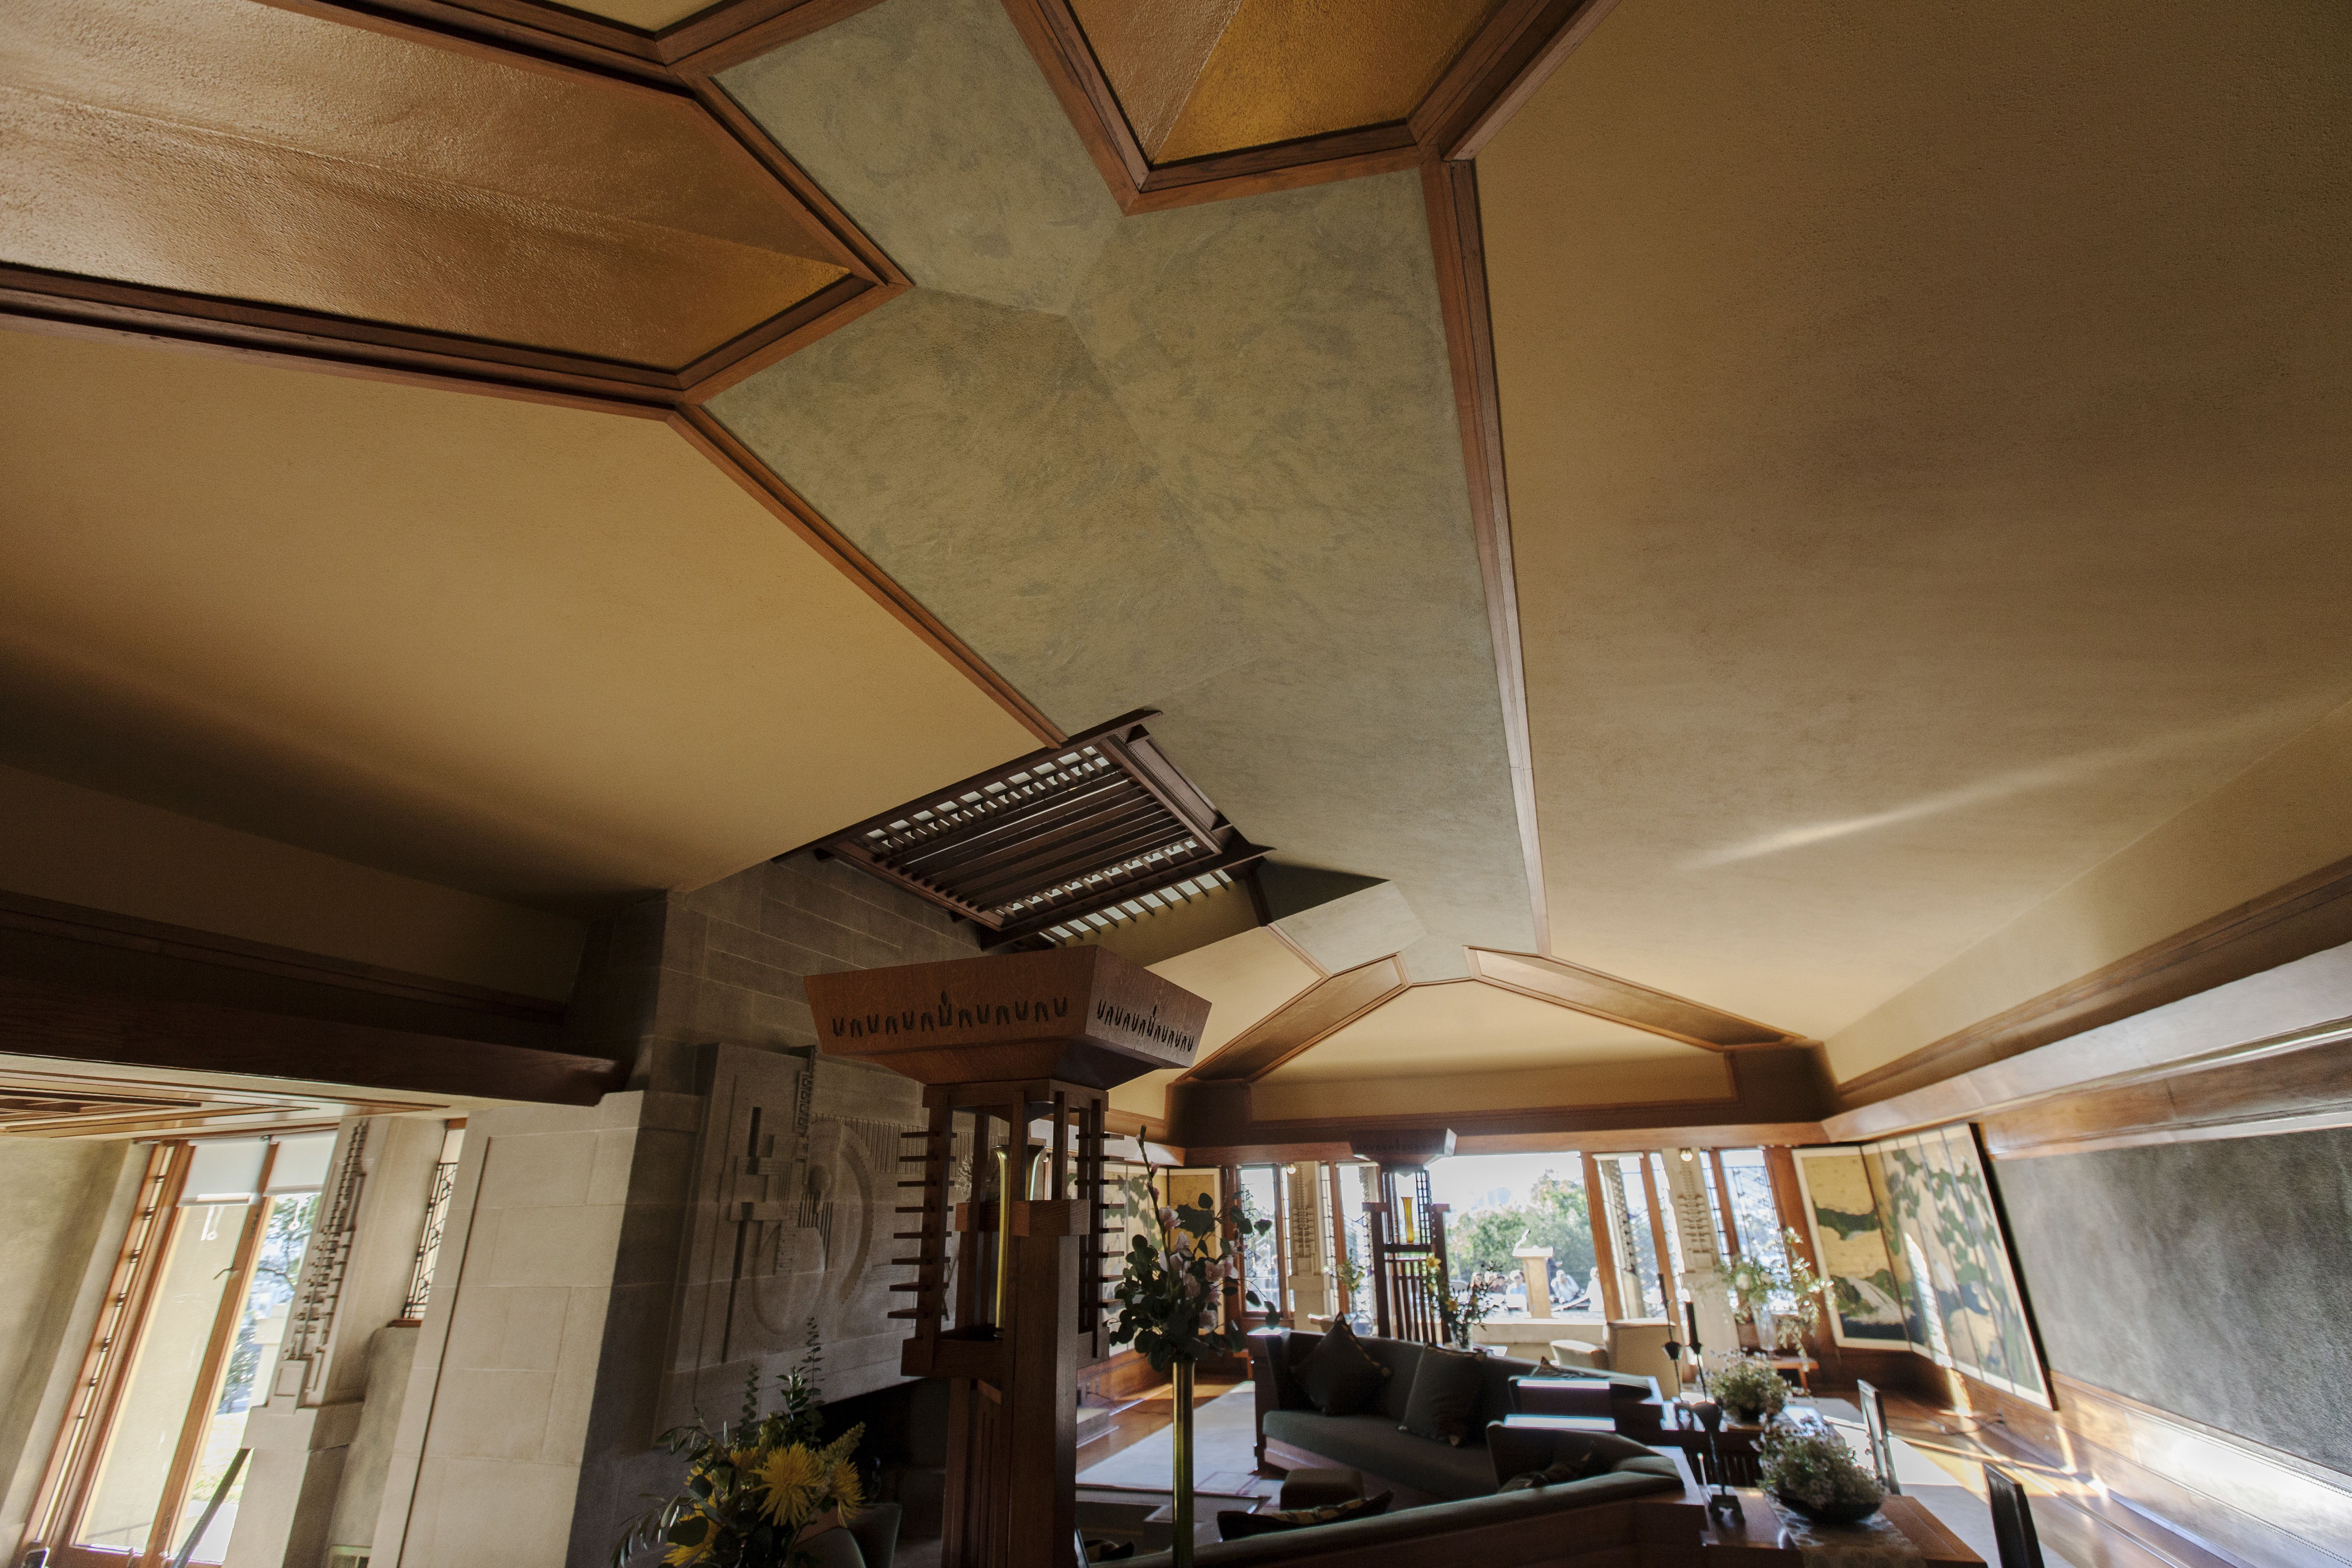 Complicated interior ceiling in Frank Lloyd Wright's Hollyhock House, 1921, built for Aline Barnsdall in southern California